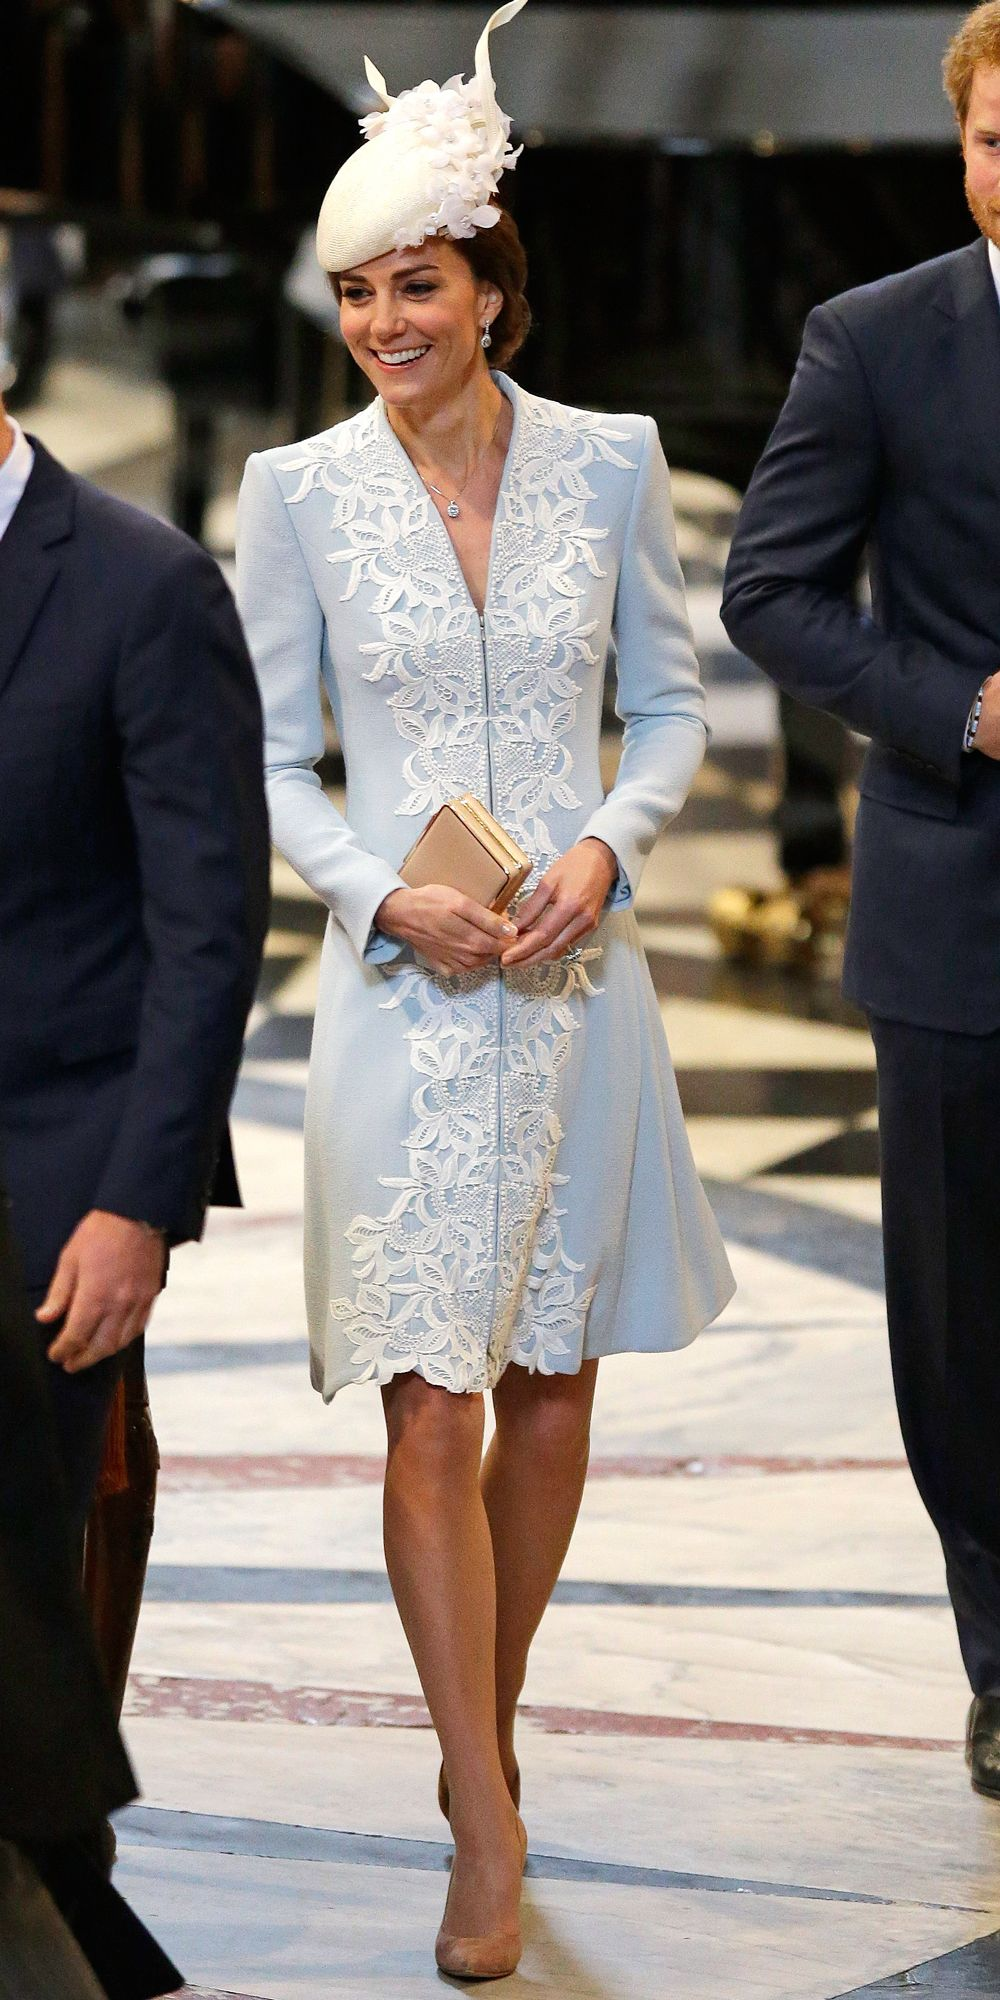 Kate Middleton's Most Memorable Outfits - June 10, 2016 from InStyle.com